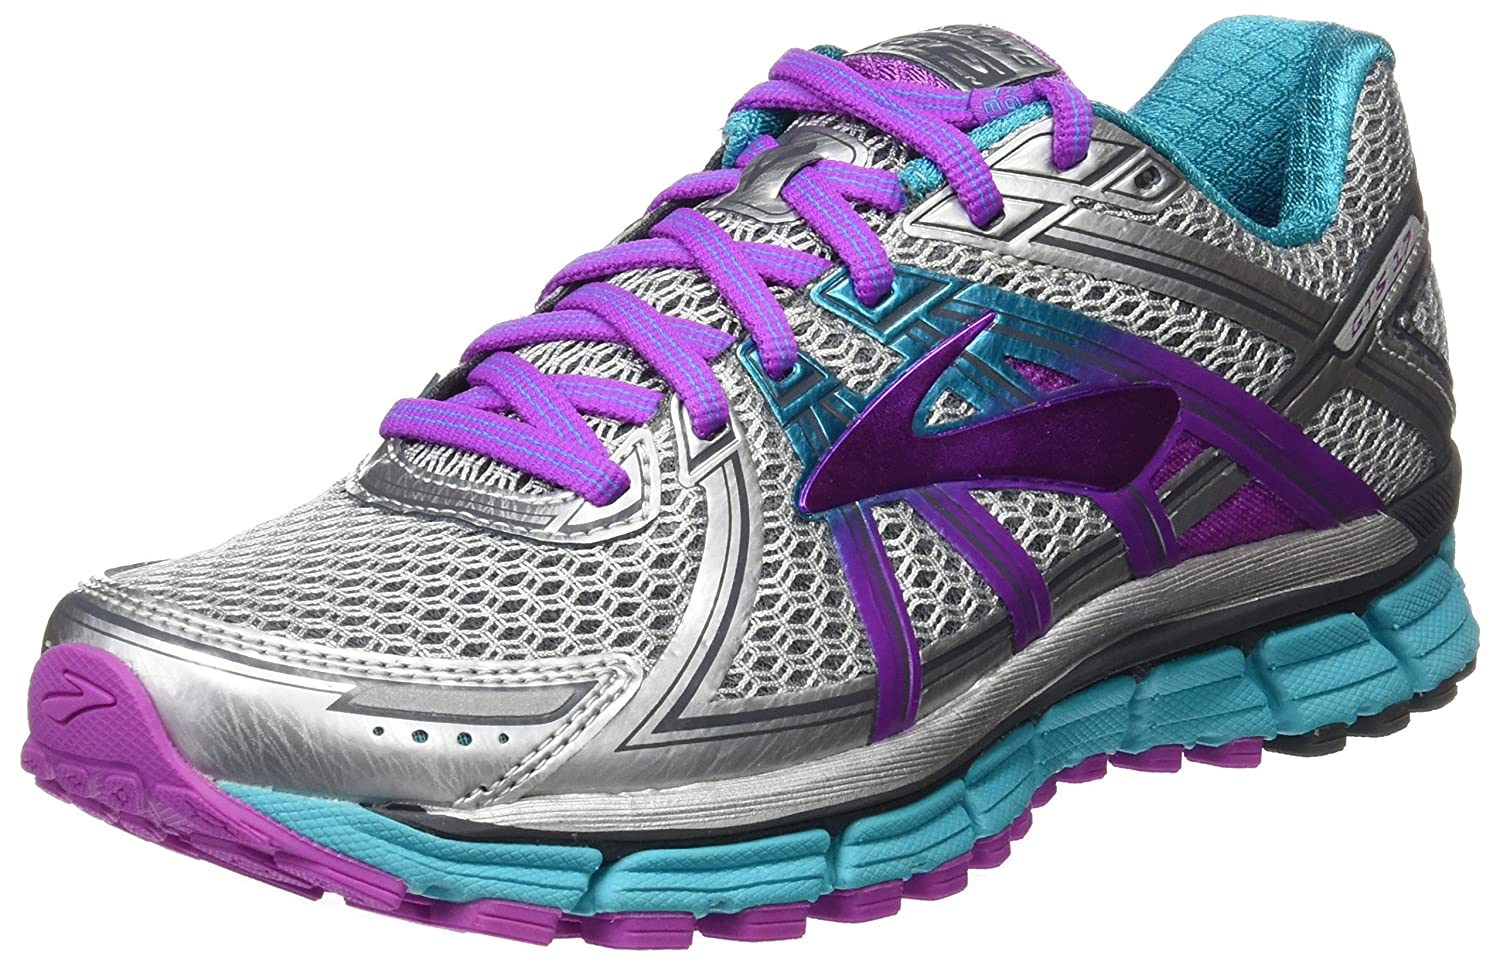 Brooks Women's Adrenaline GTS 17 B01GEU0H4S 5.5 EE US|Silver/Purple Cactus Flower/Bluebird